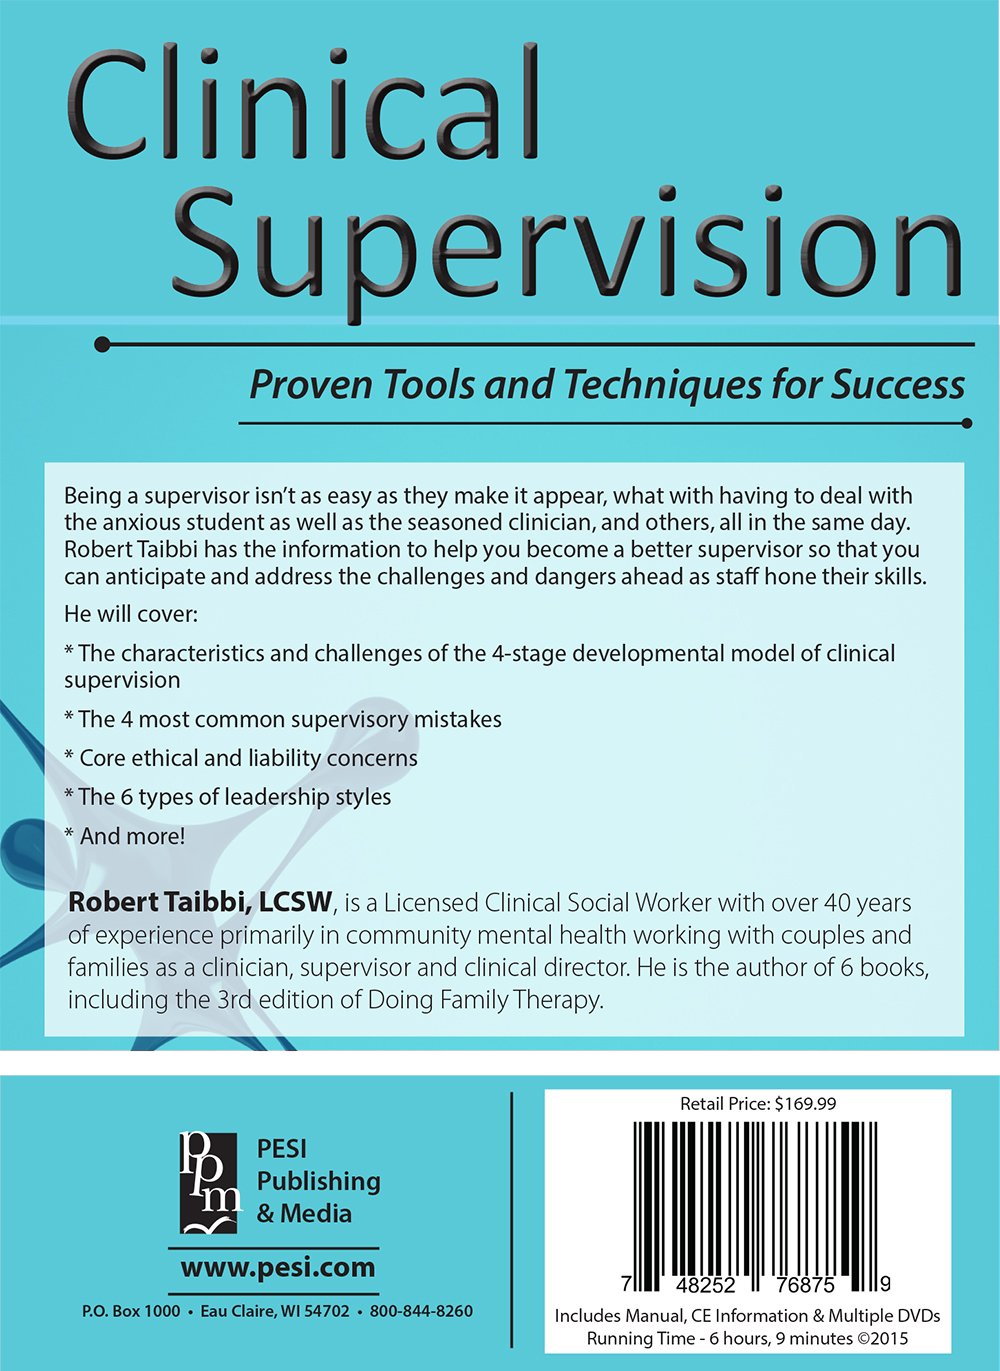 com clinical supervision proven tools and techniques for com clinical supervision proven tools and techniques for success bob taibbi pesi publishing media movies tv